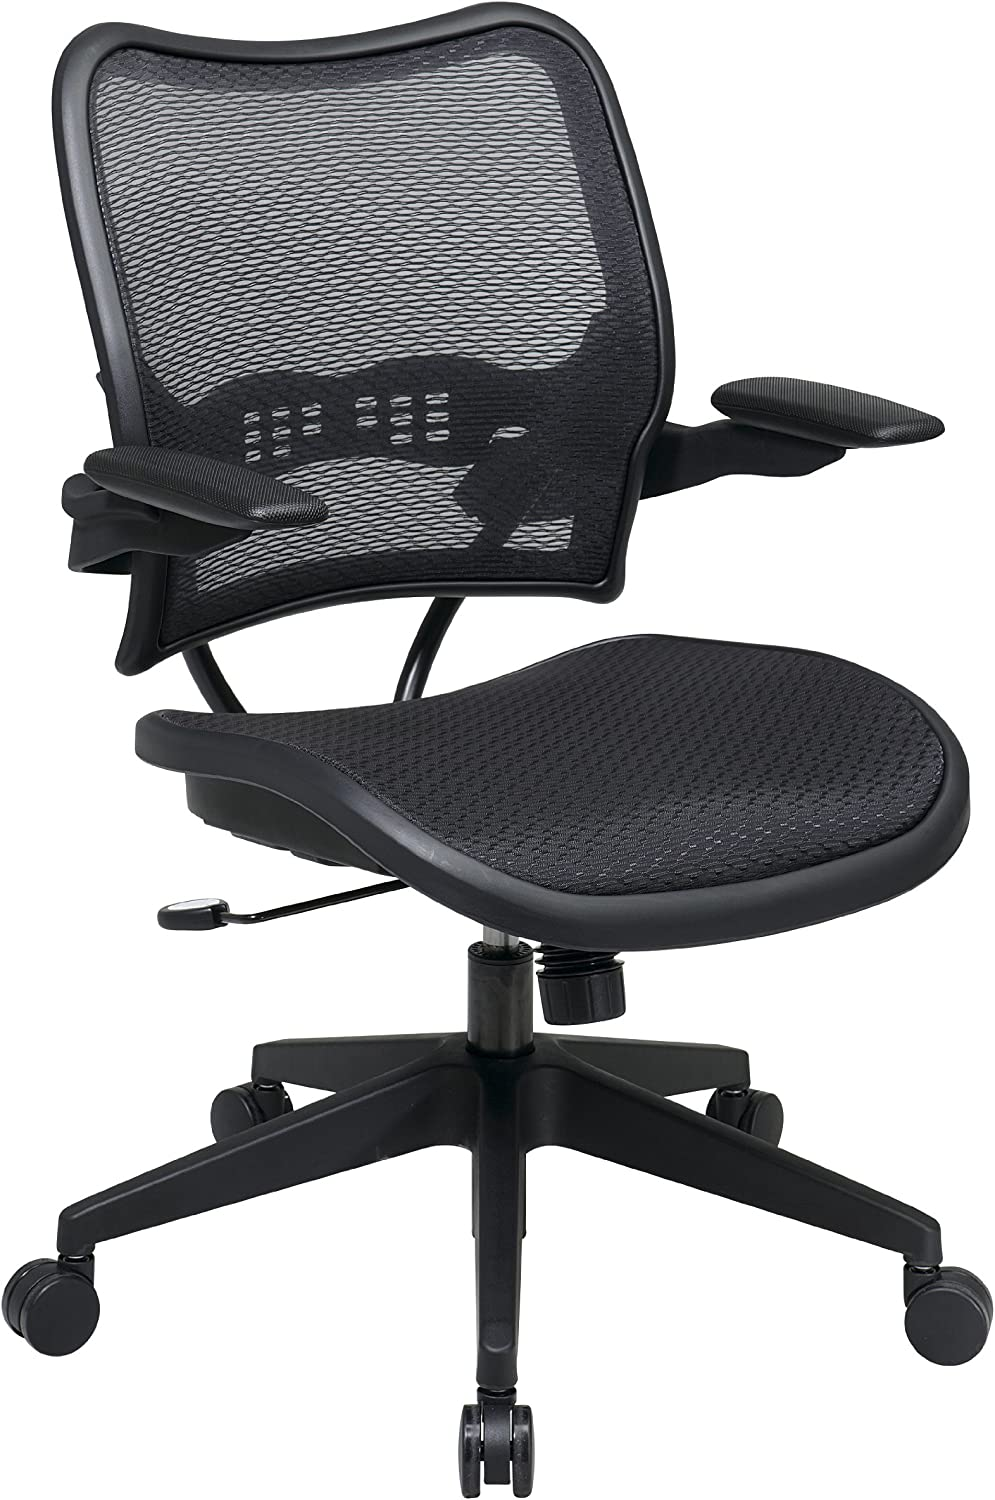 SPACE Seating Deluxe AirGrid Seat and Back, 2-to-1 Synchro Tilt Conrol and Cantilever Arms Managers Chair, Black